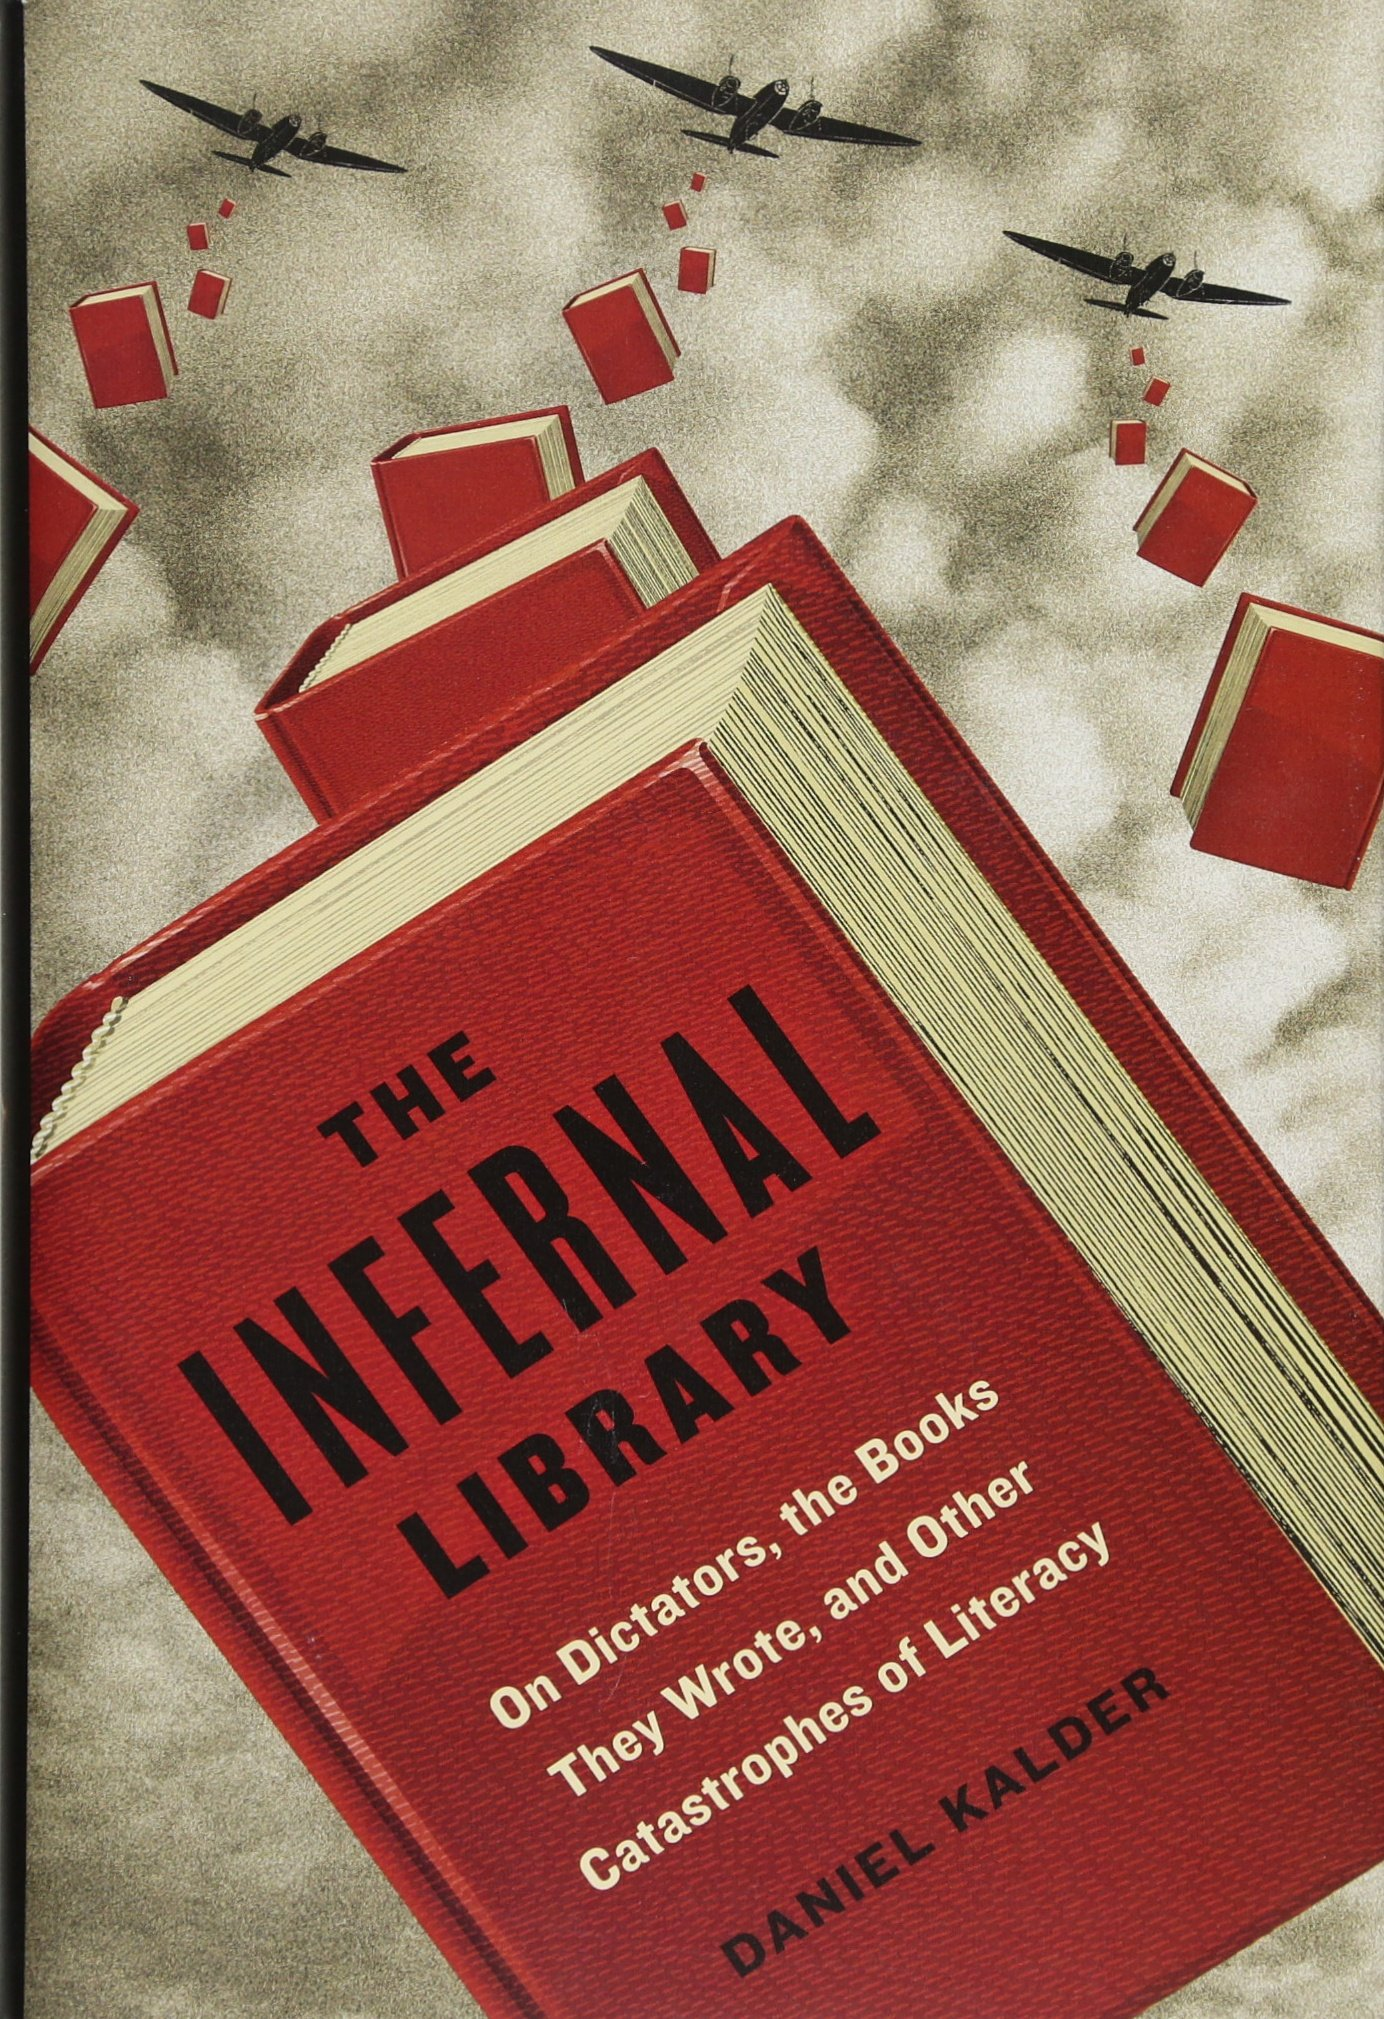 Amazon.com: The Infernal Library: On Dictators, The Books They Wrote, And  Other Catastrophes Of Literacy (9781627793421): Daniel Kalder: Books